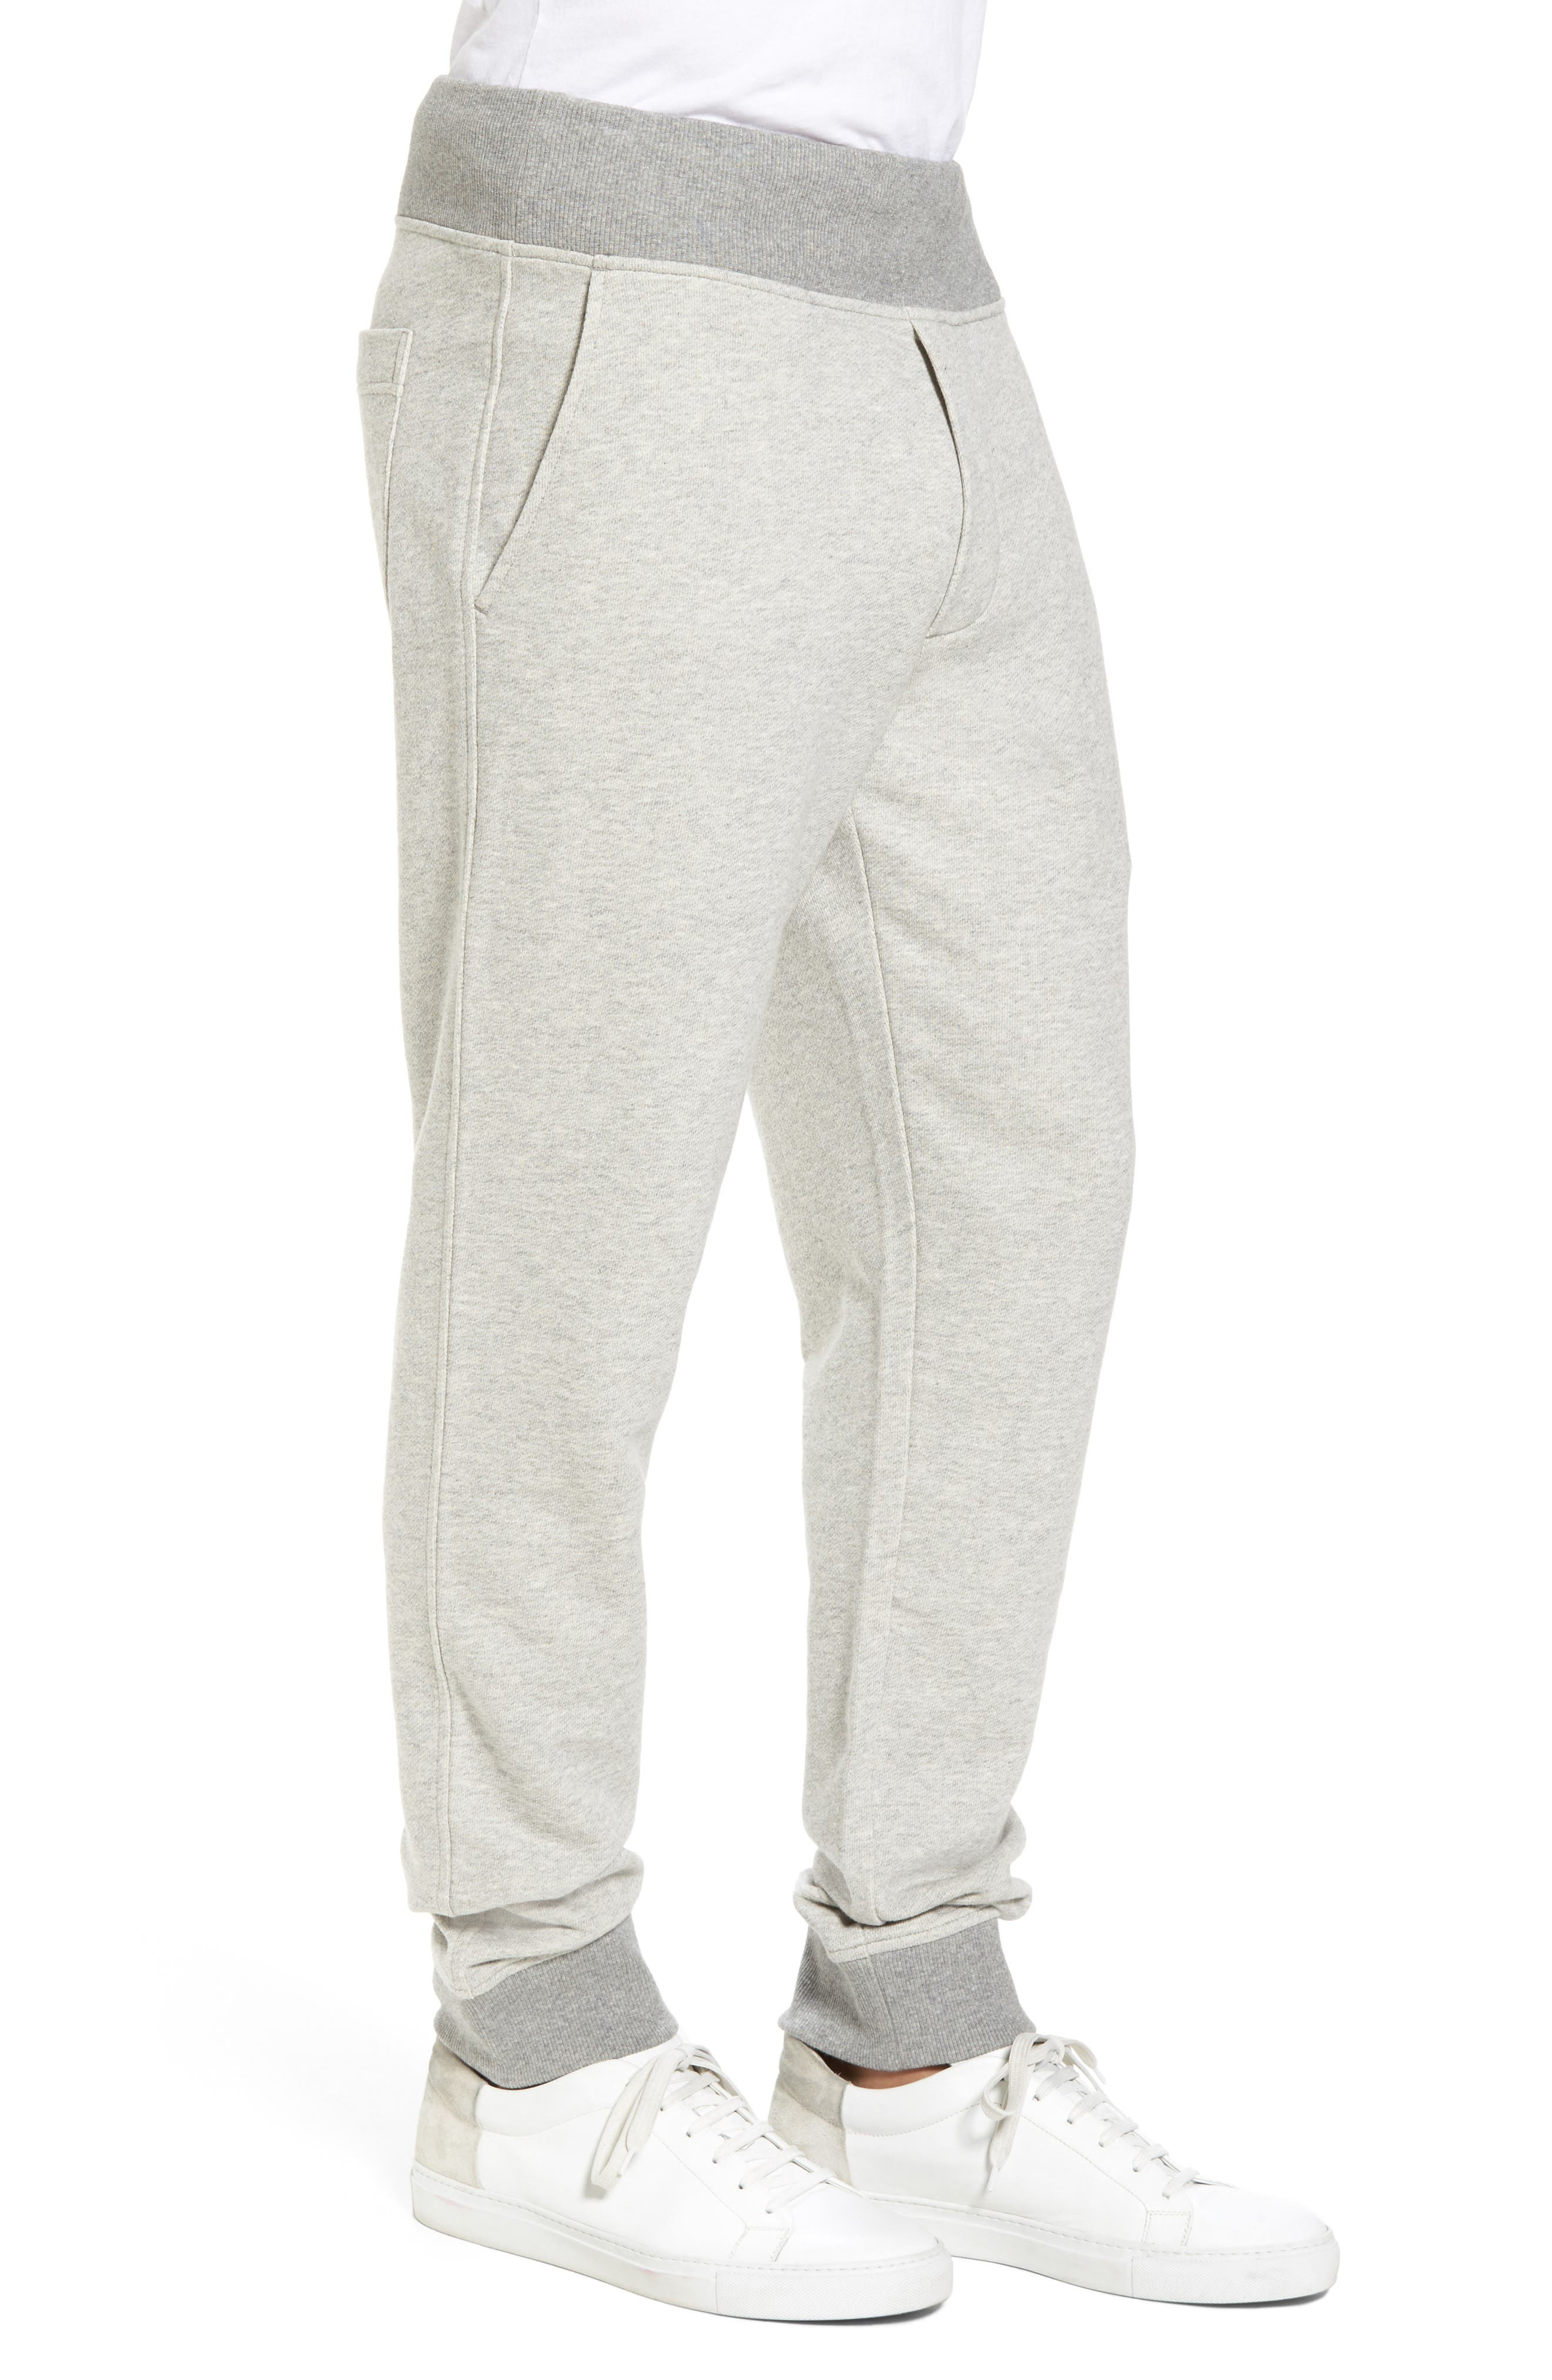 French Terry Regular Fit Sweatpants,                             Alternate thumbnail 6, color,